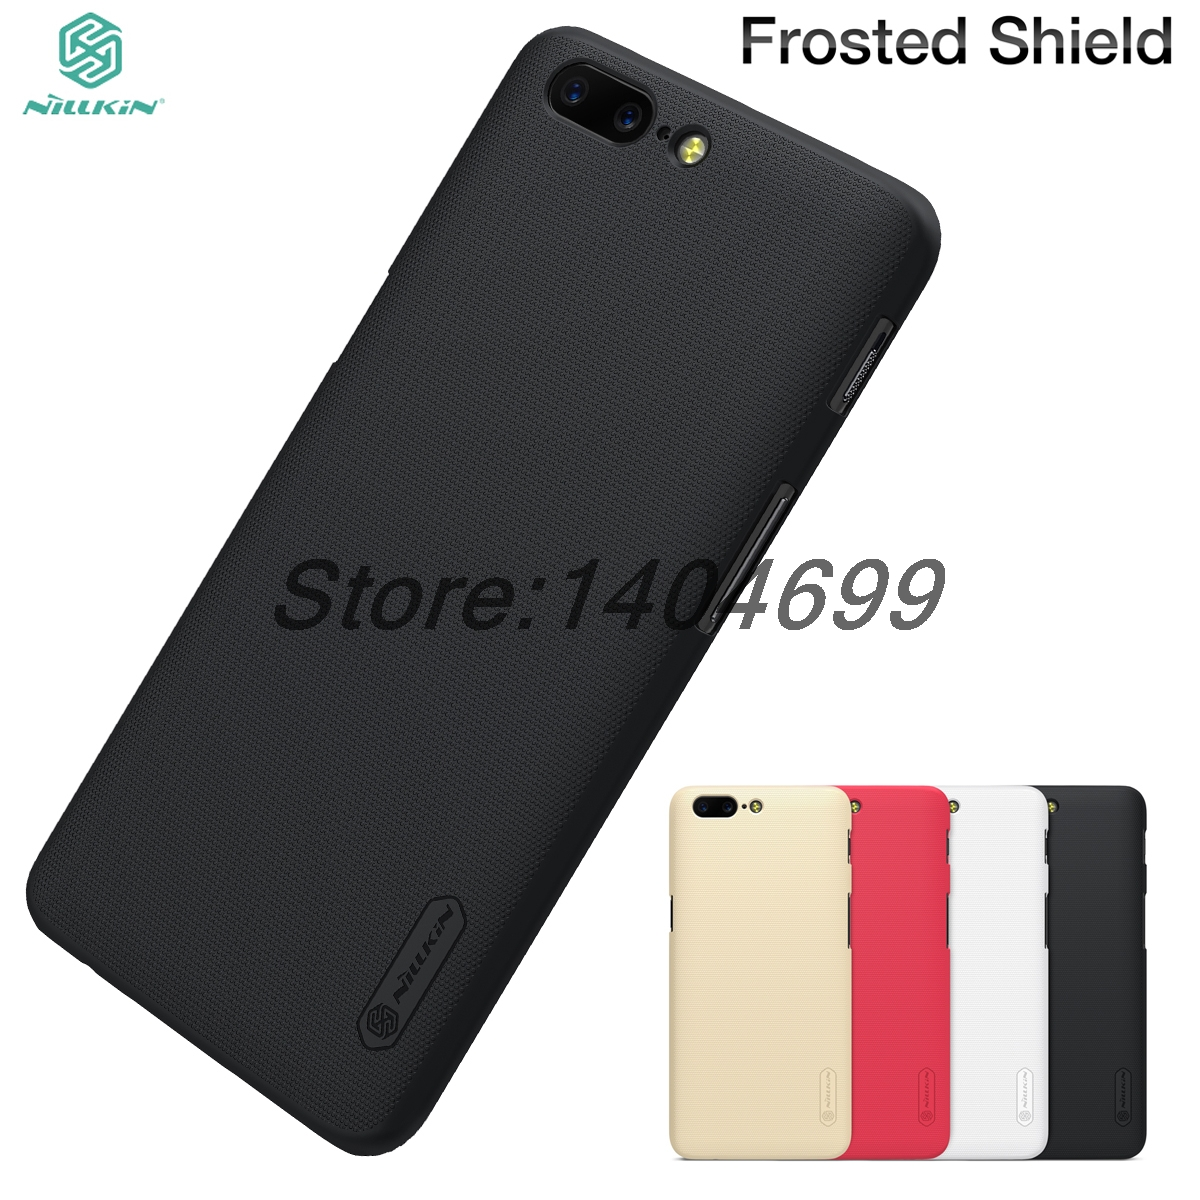 oneplus-fontb2-b-font-case-a2001-nillkin-frosted-shield-phone-armor-case-for-oneplus-fontb5-b-font-c